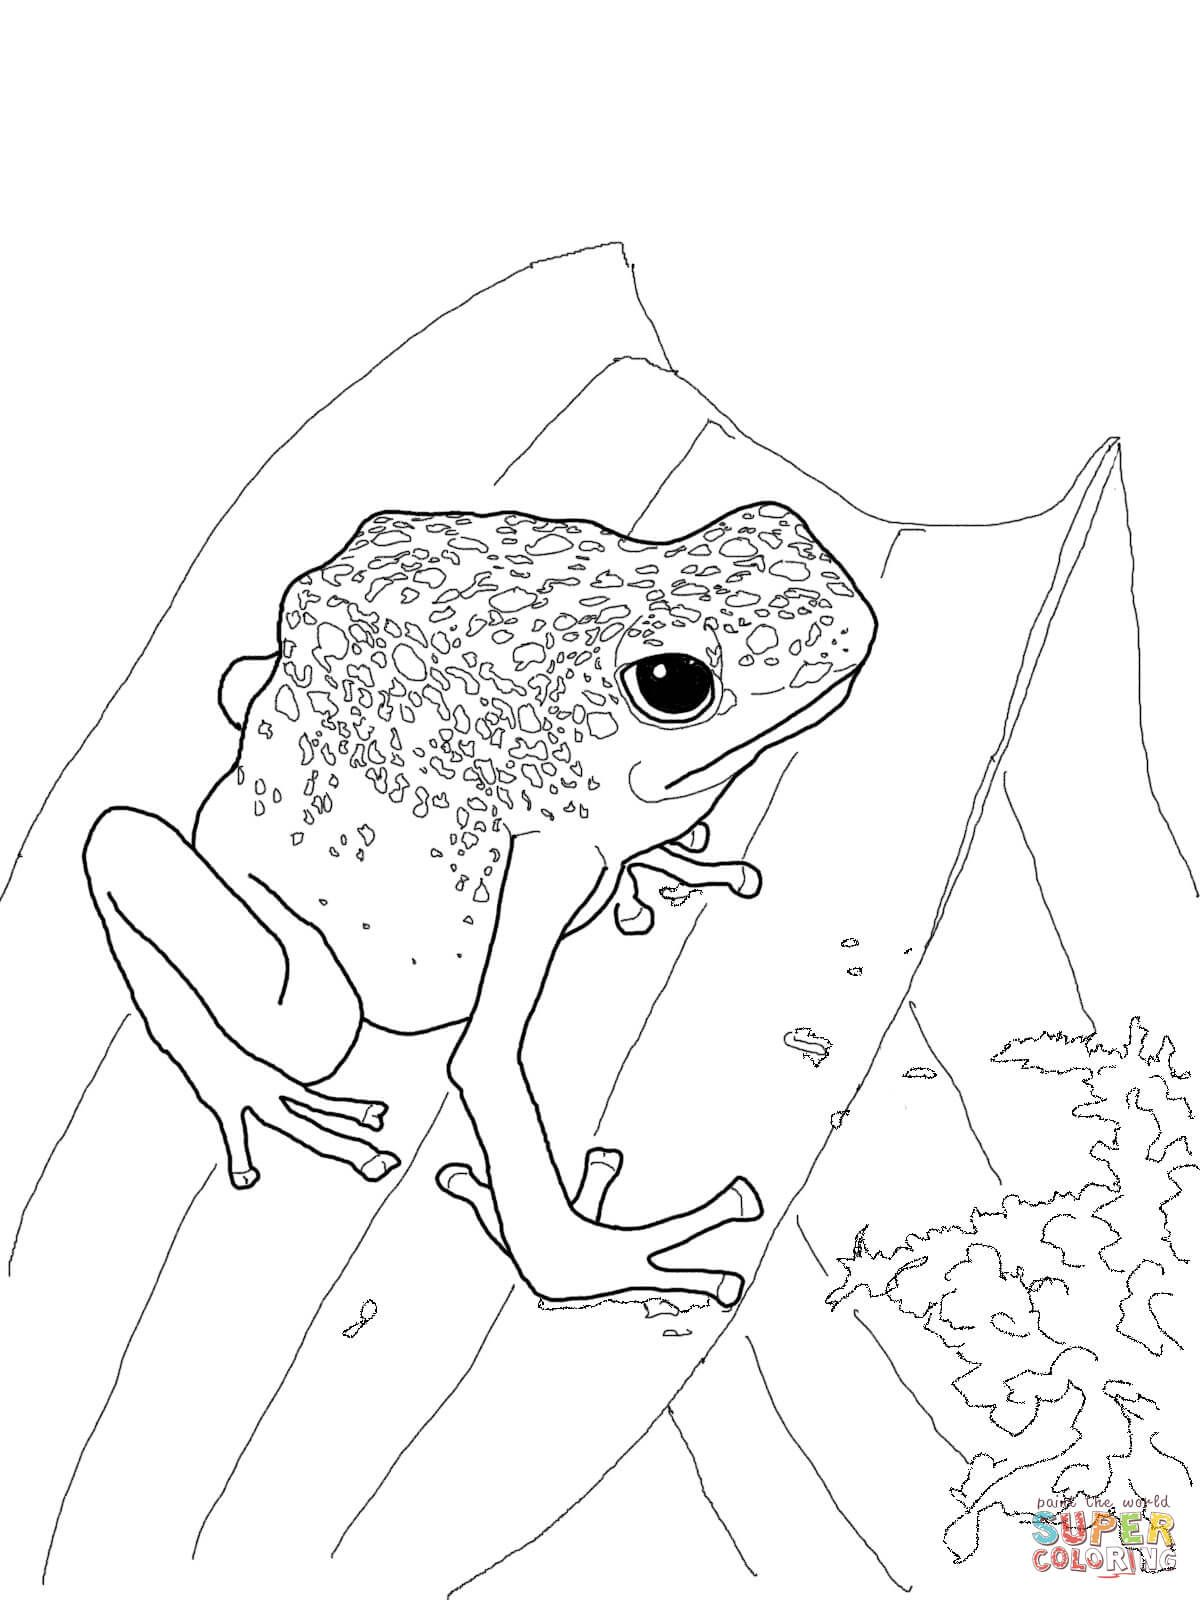 rainforest frog coloring pages poison dart frog coloring pages blue poison dart frog coloring rainforest pages frog